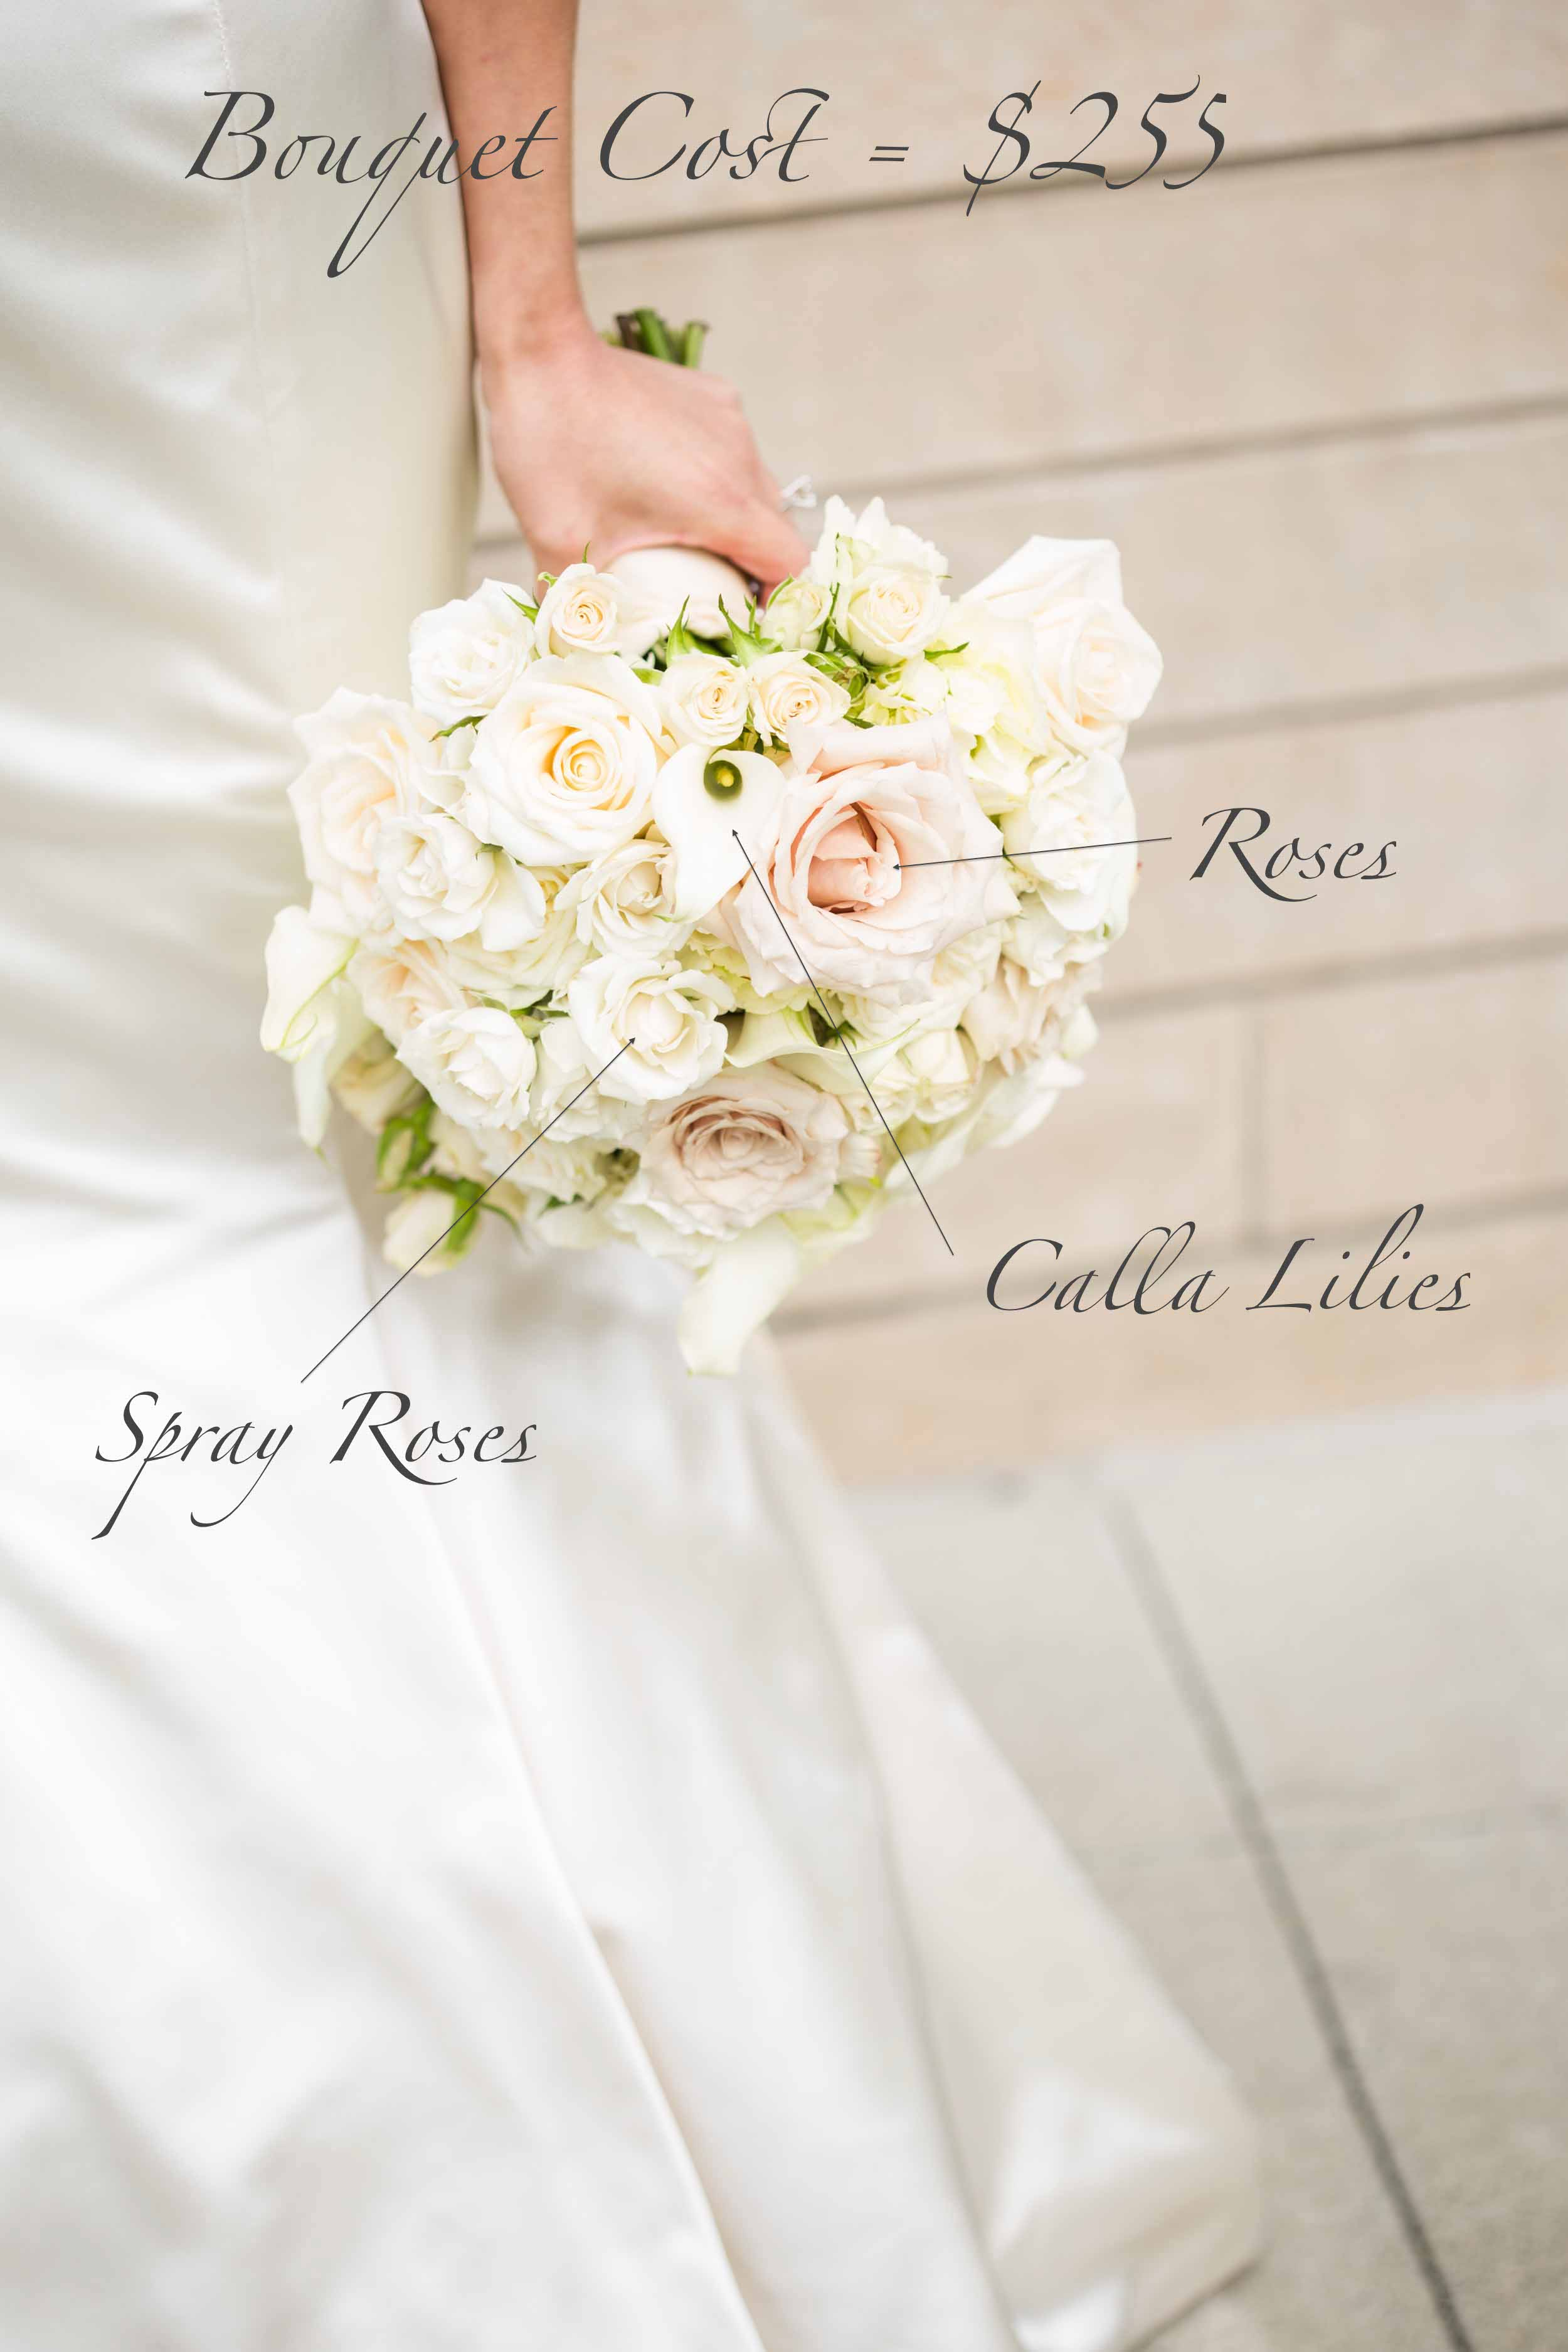 Bridal Bouquet Pricing of a rounded white bouquet of all white and ivory roses